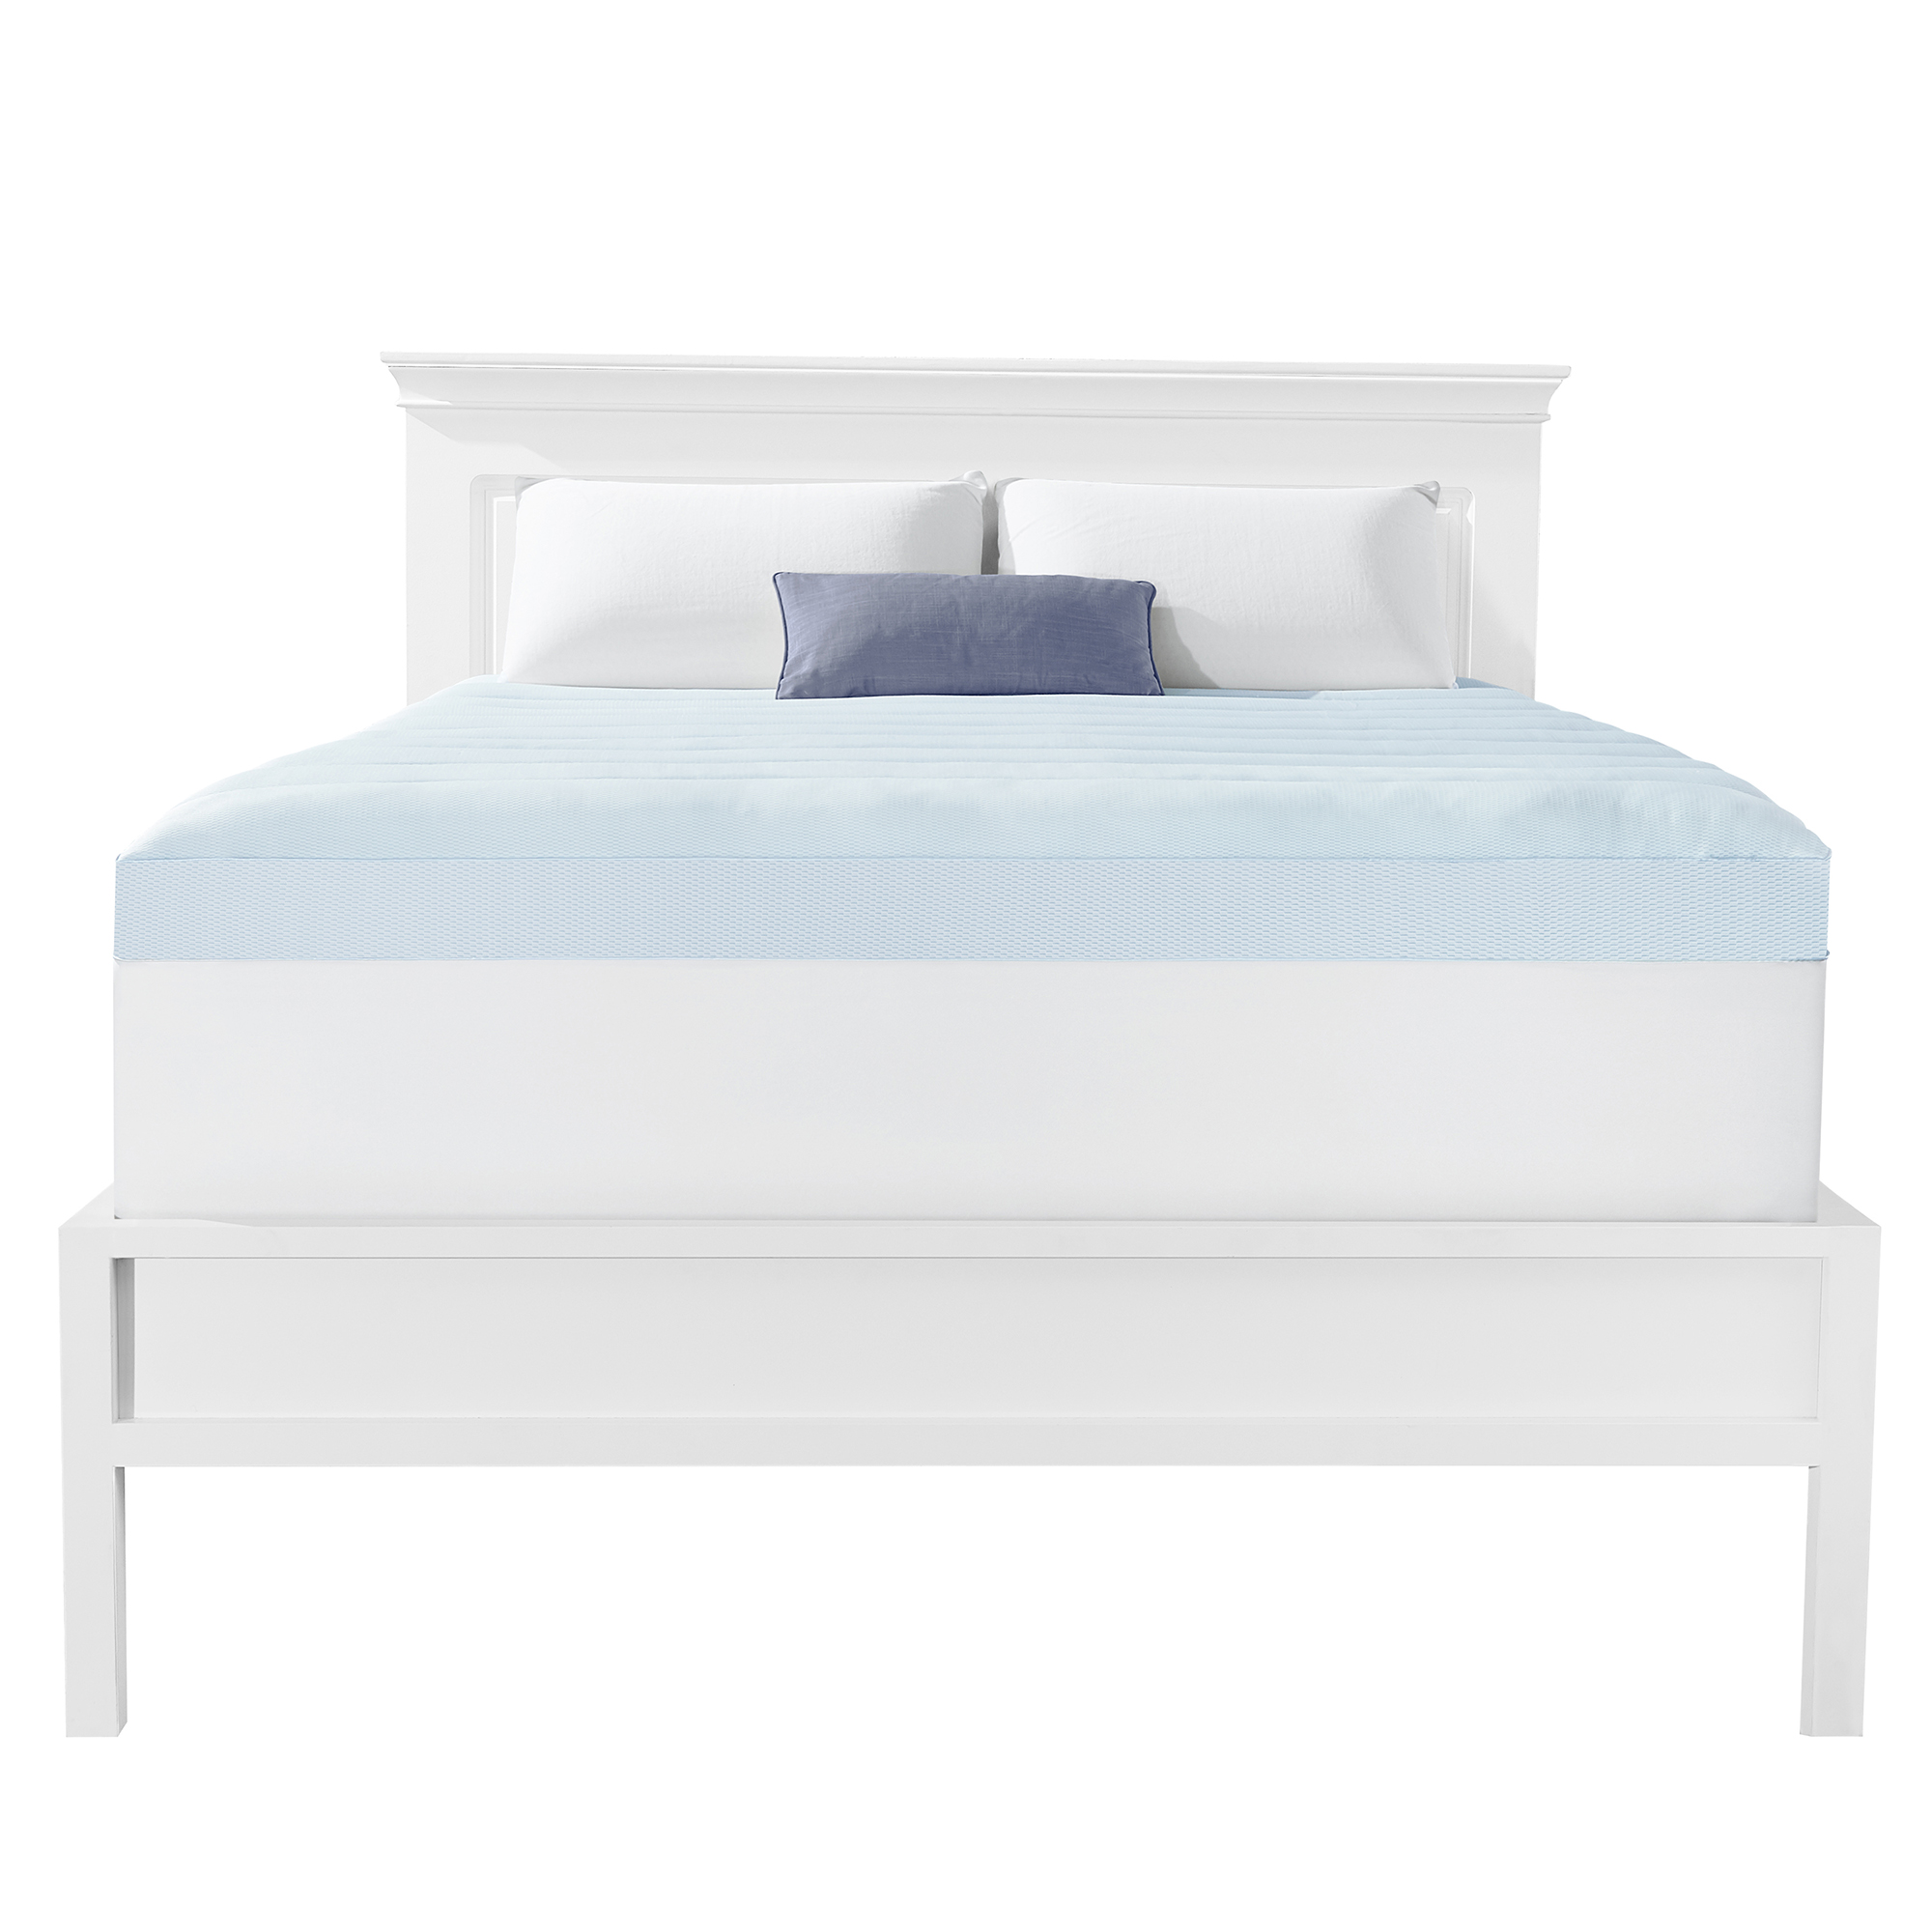 Dream Serenity 4 Inch Gel Memory Foam Topper With Pillowtop Cooling